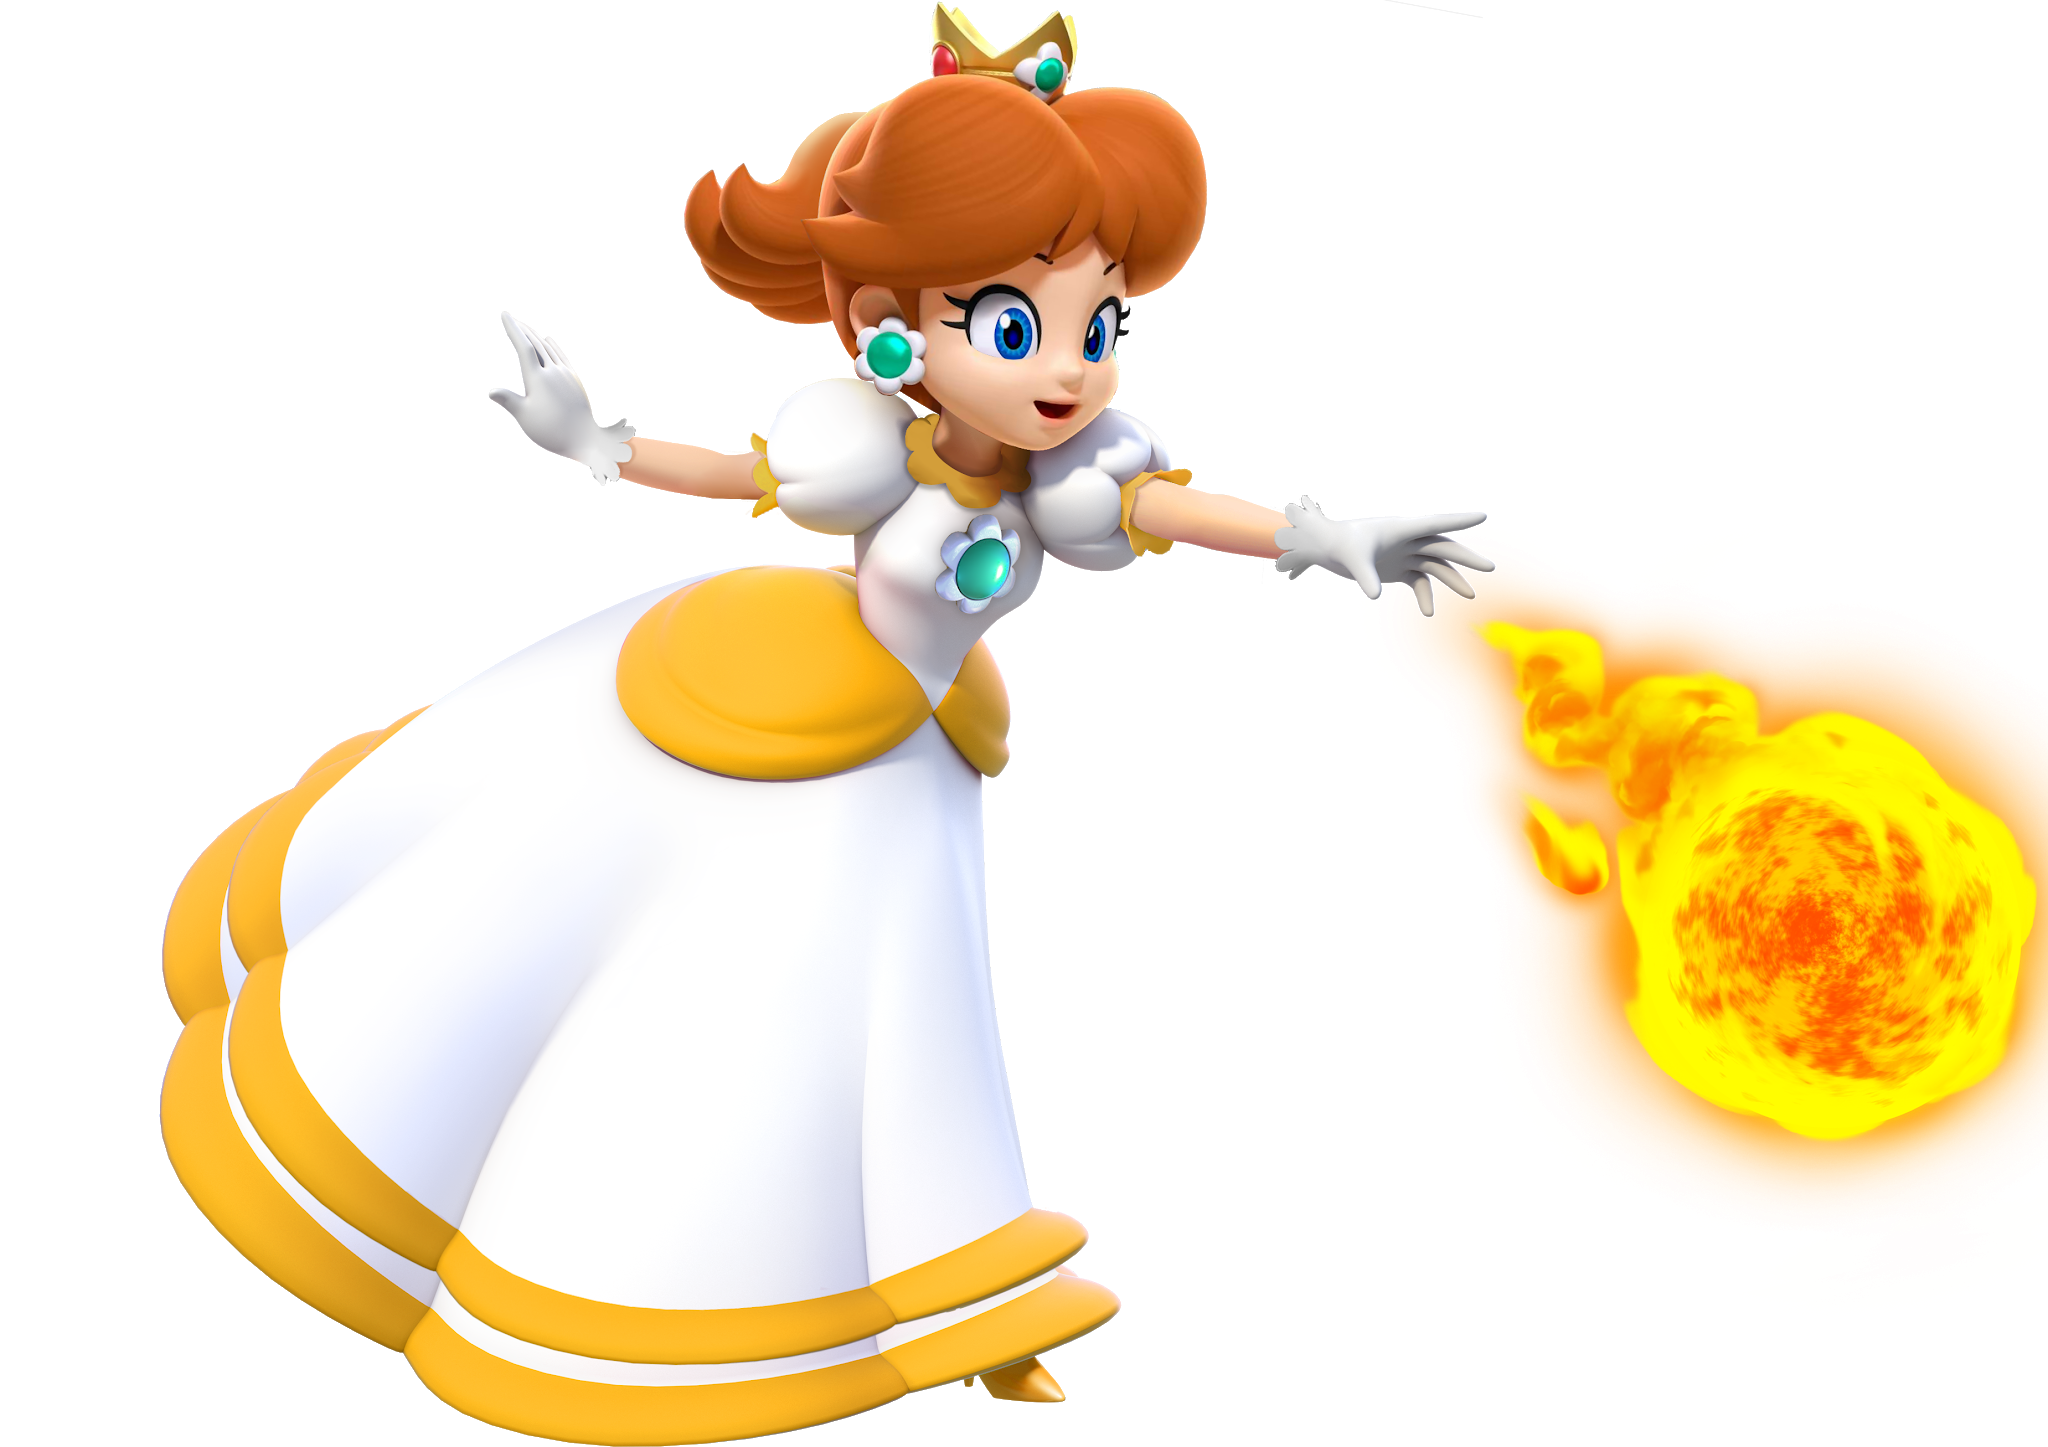 How Princess Daisy Should Be In Her Official Fire Flower Form Take Notes Nintendo By Rikiiu Wearedaisy Princess Daisy Super Princess Peach Mario And Luigi